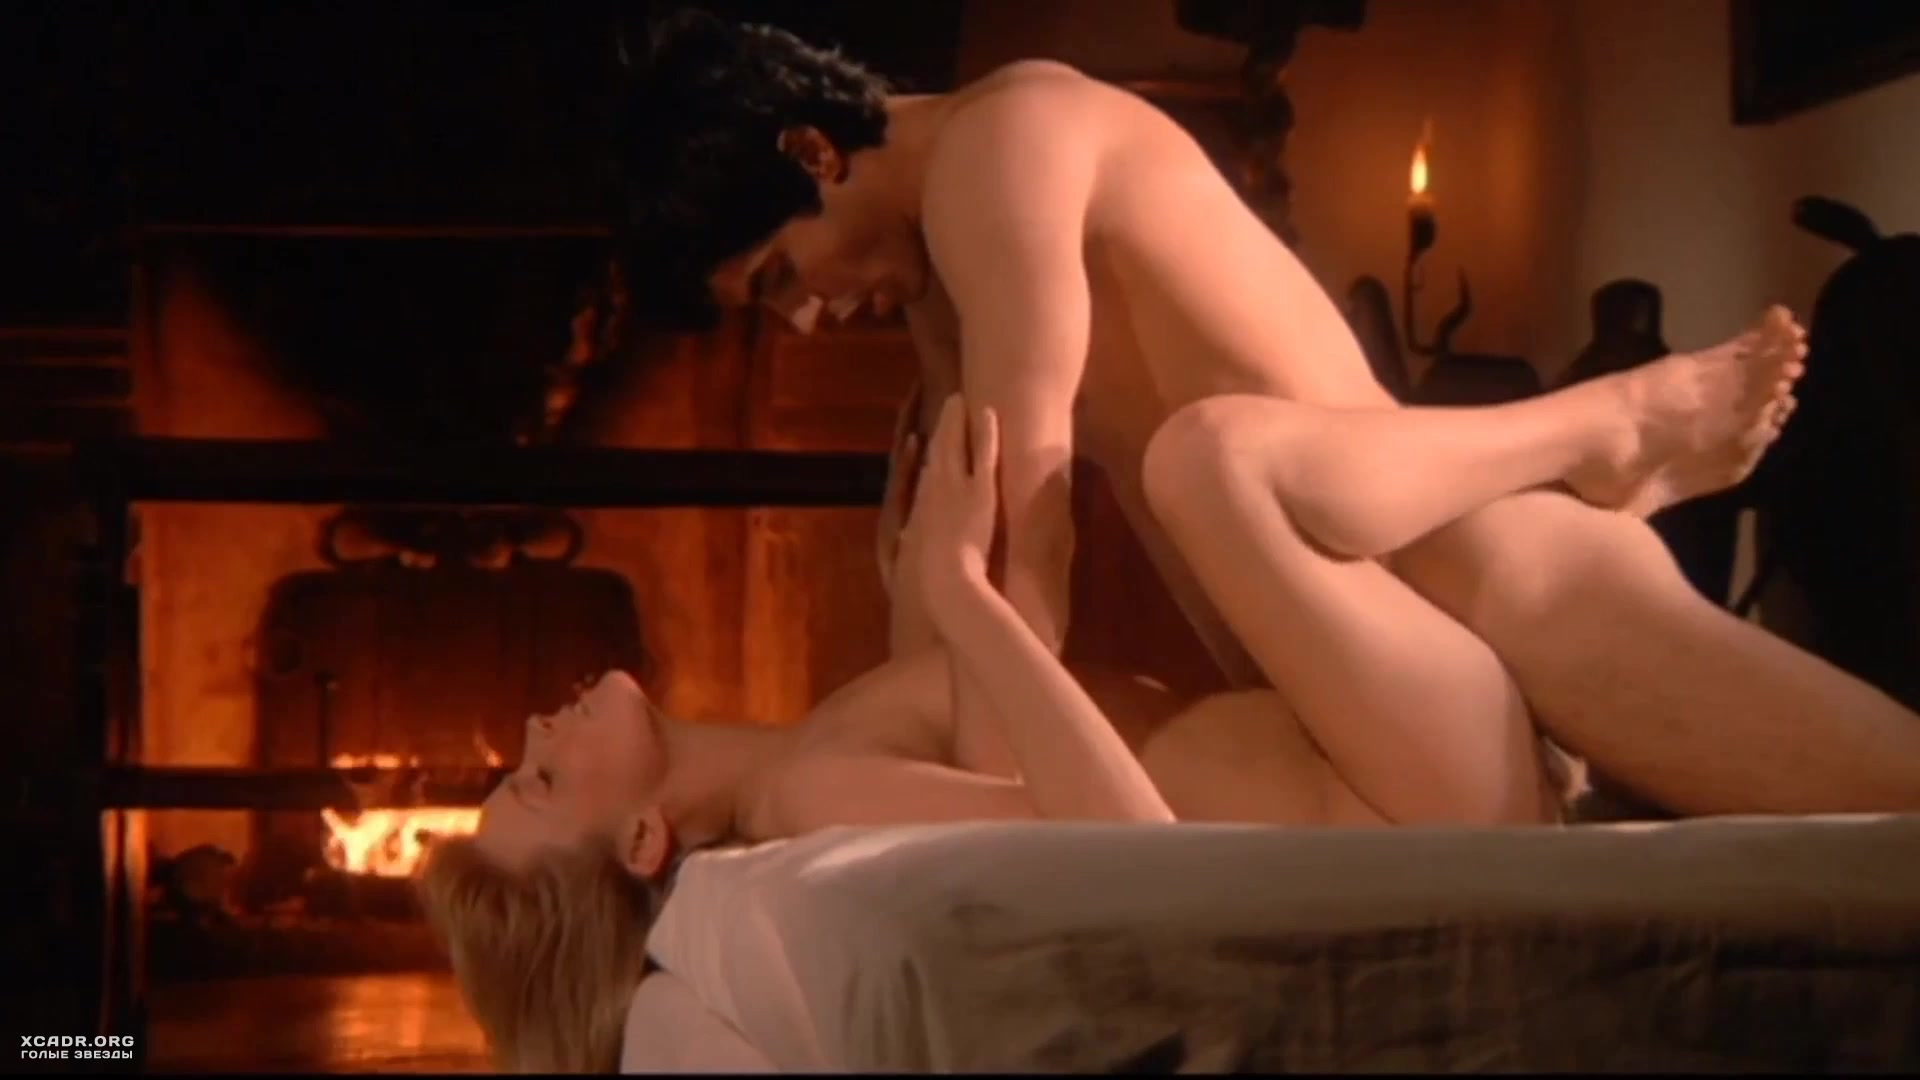 Hot sex scenes in hollywood